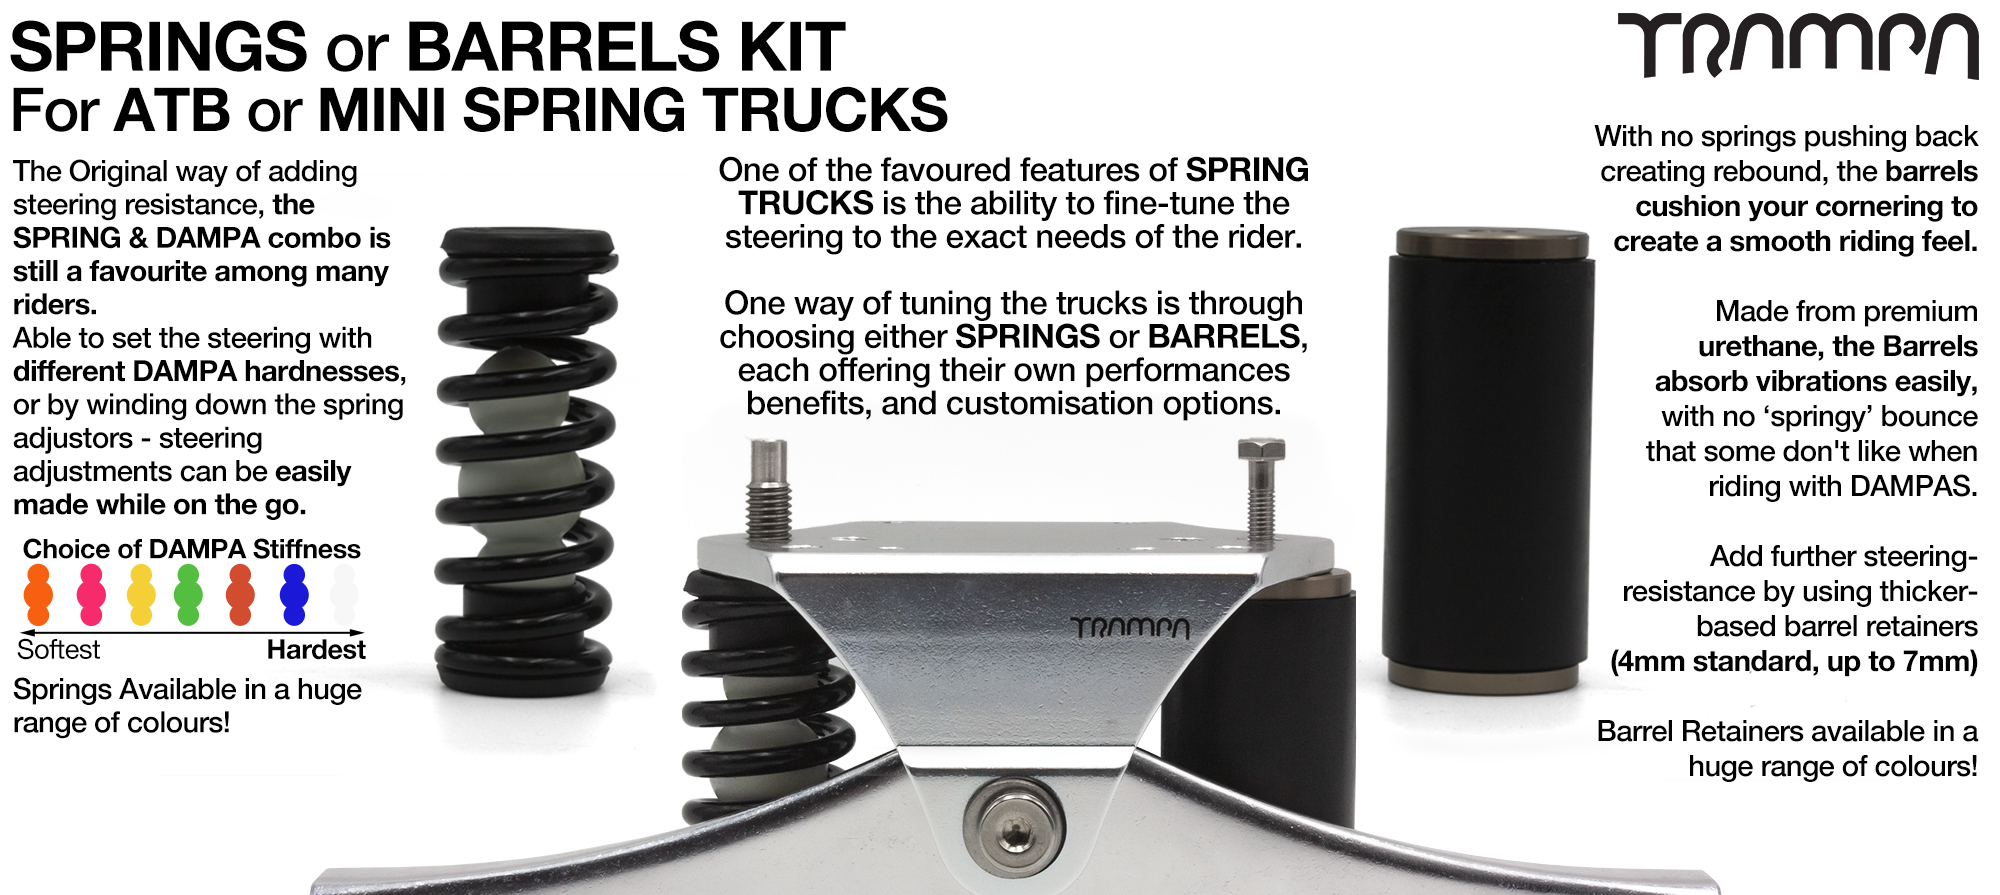 Spring kit Complete for 1x Truck - 2x Spring 2x Dampa 4x Spring Retainers 2x Spring Adjuster & 2 M5x12mm Countersunk Bolt